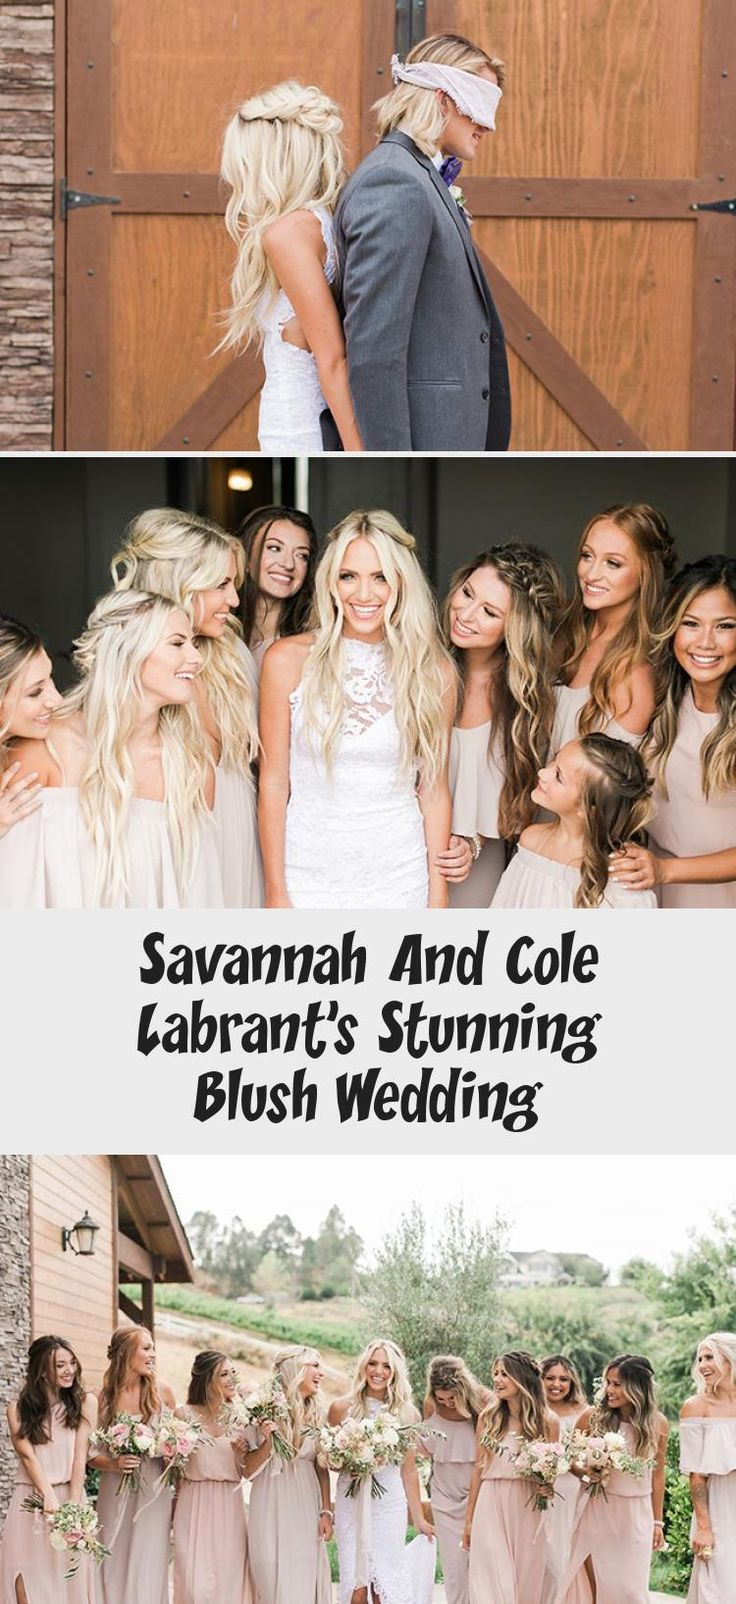 Savannah and Cole LaBrant's Stunning Blush Wedding - Inspired By This #TaupeBridesmaidDresses #BridesmaidDressesVintage #UniqueBridesmaidDresses #BridesmaidDressesBlue #VelvetBridesmaidDresses